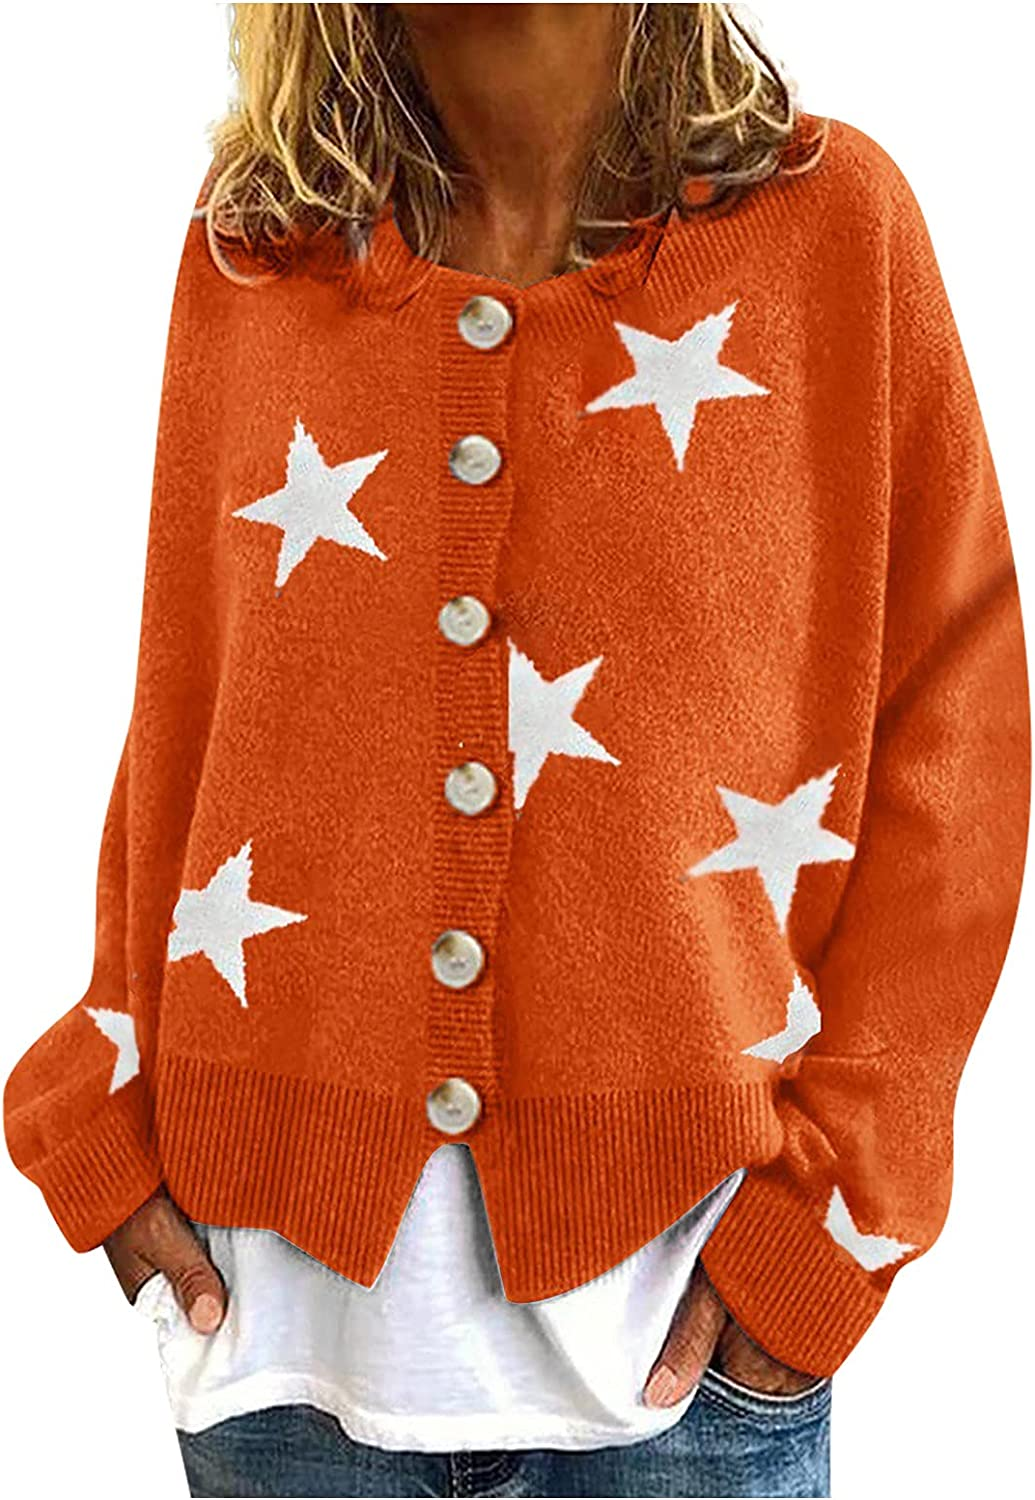 Womens Cute Star Pattern Print Knit Cardigan Sweater Crewneck Long Sleeve Button Down Open Front Knit Coat 90s Tops